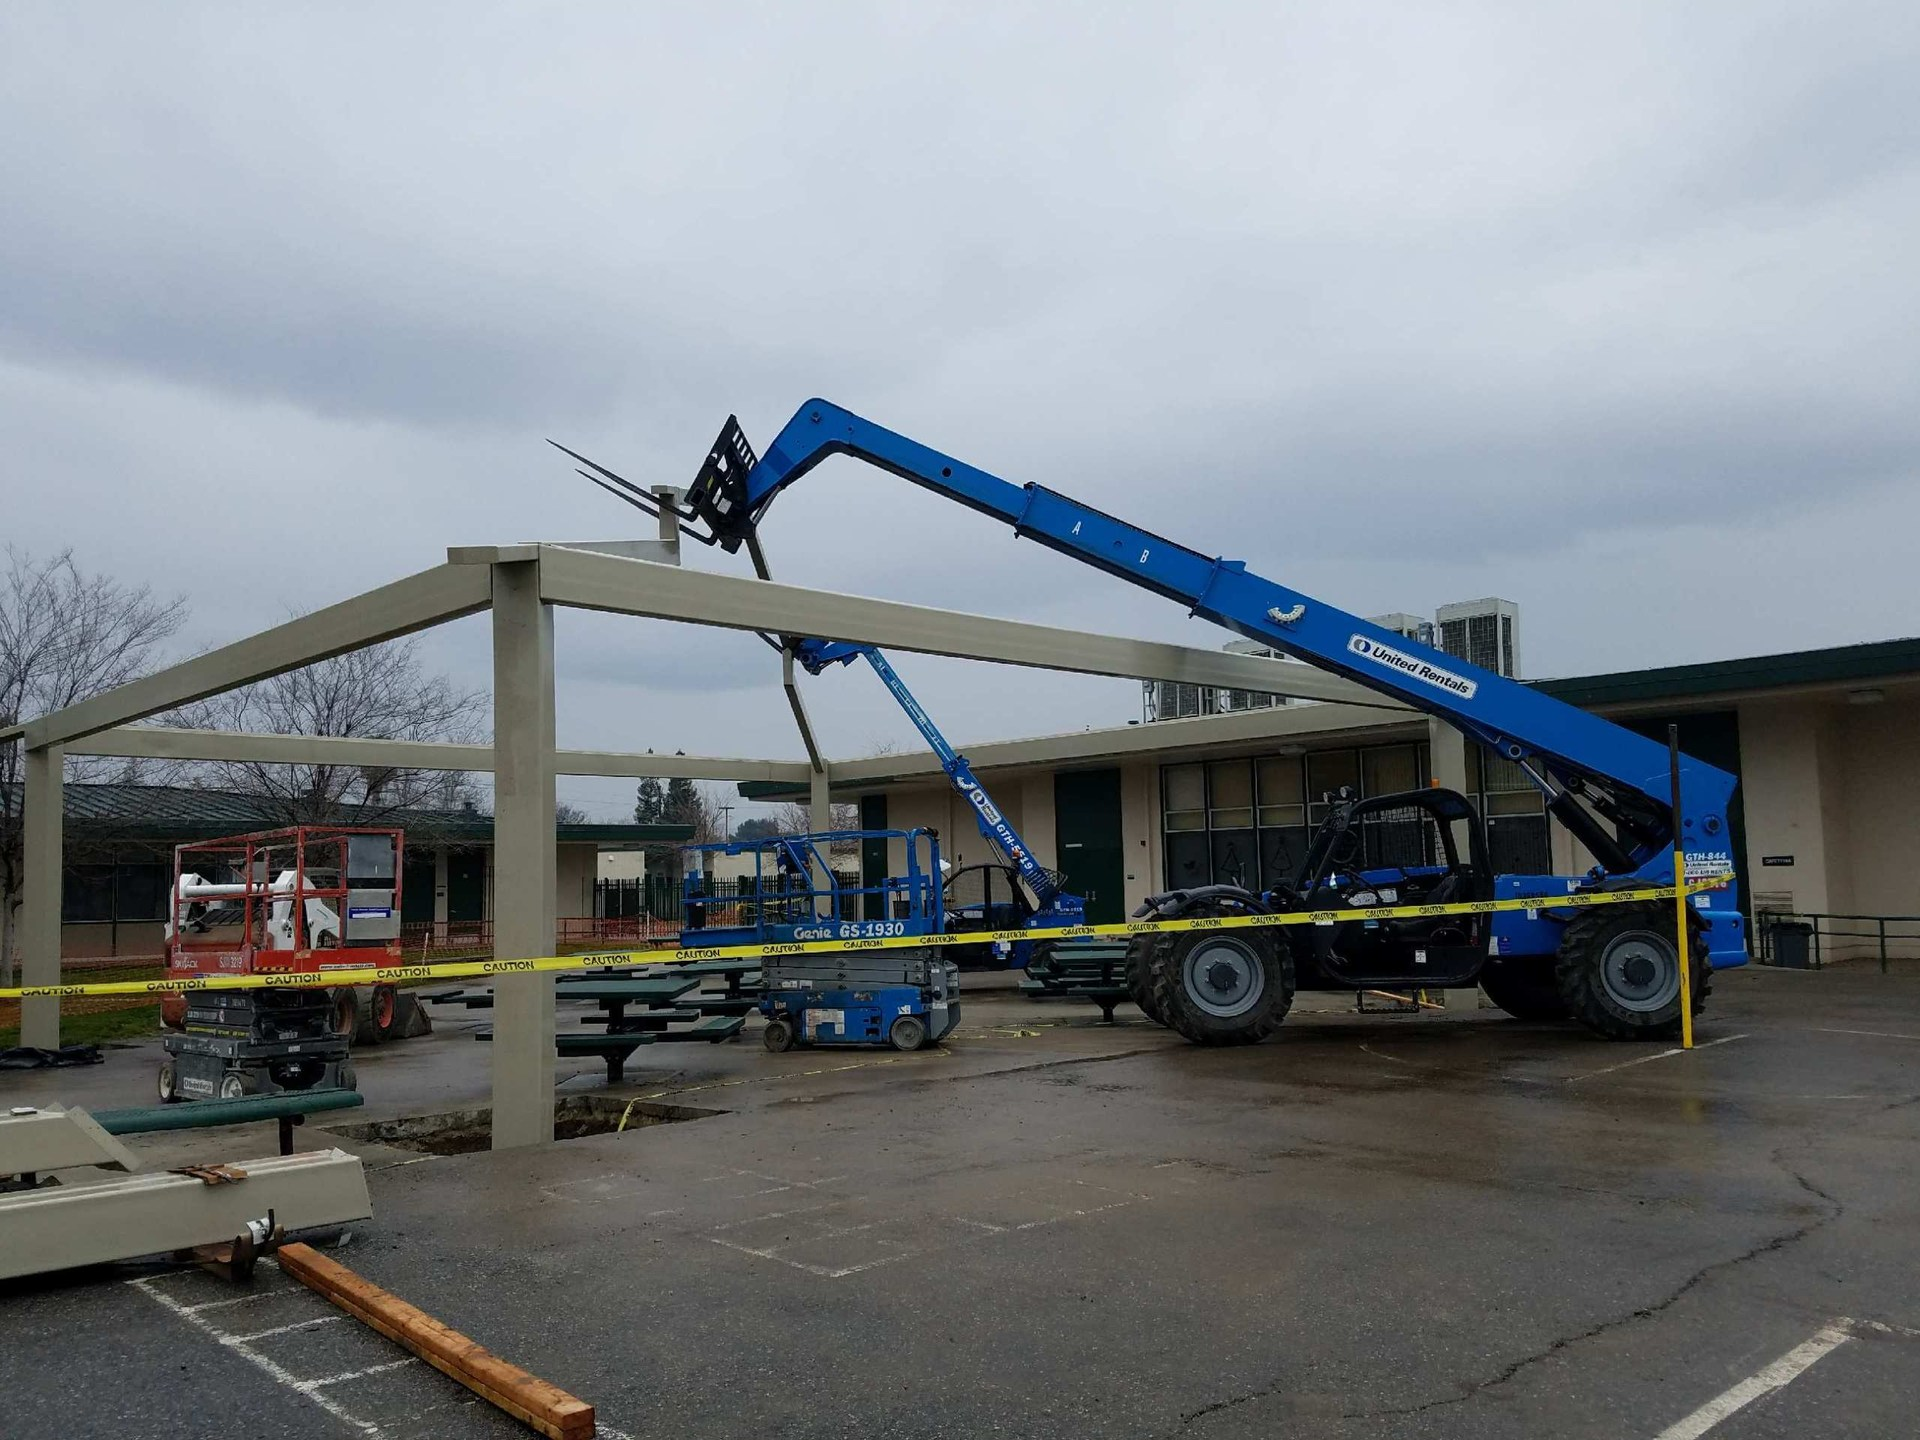 New Kennedy Elementary Shade Structure in Progress